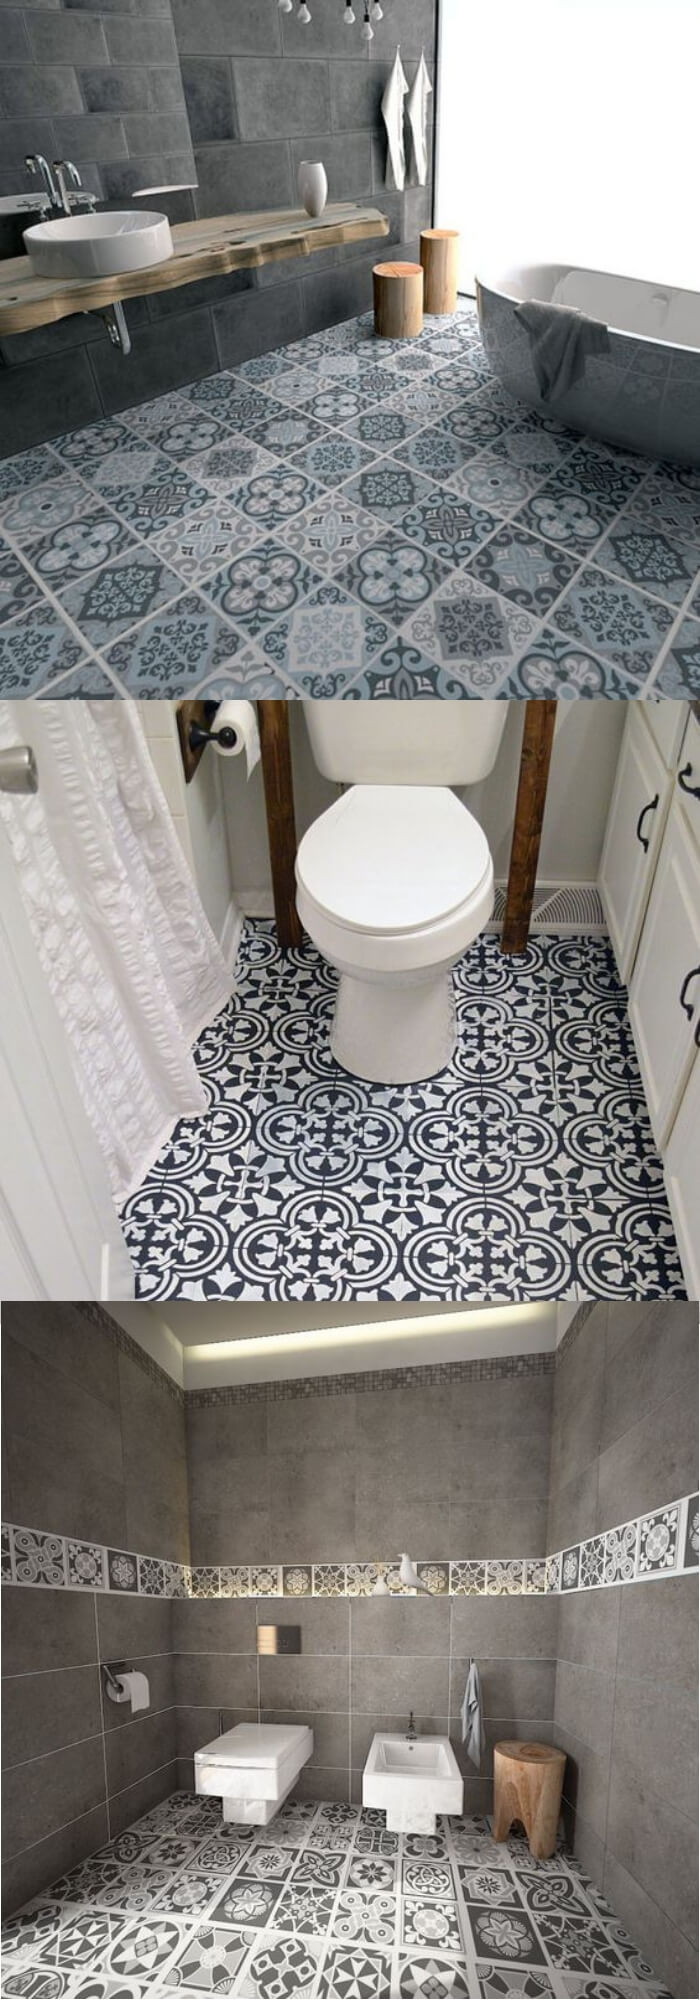 Vintage bathroom floor tile ideas